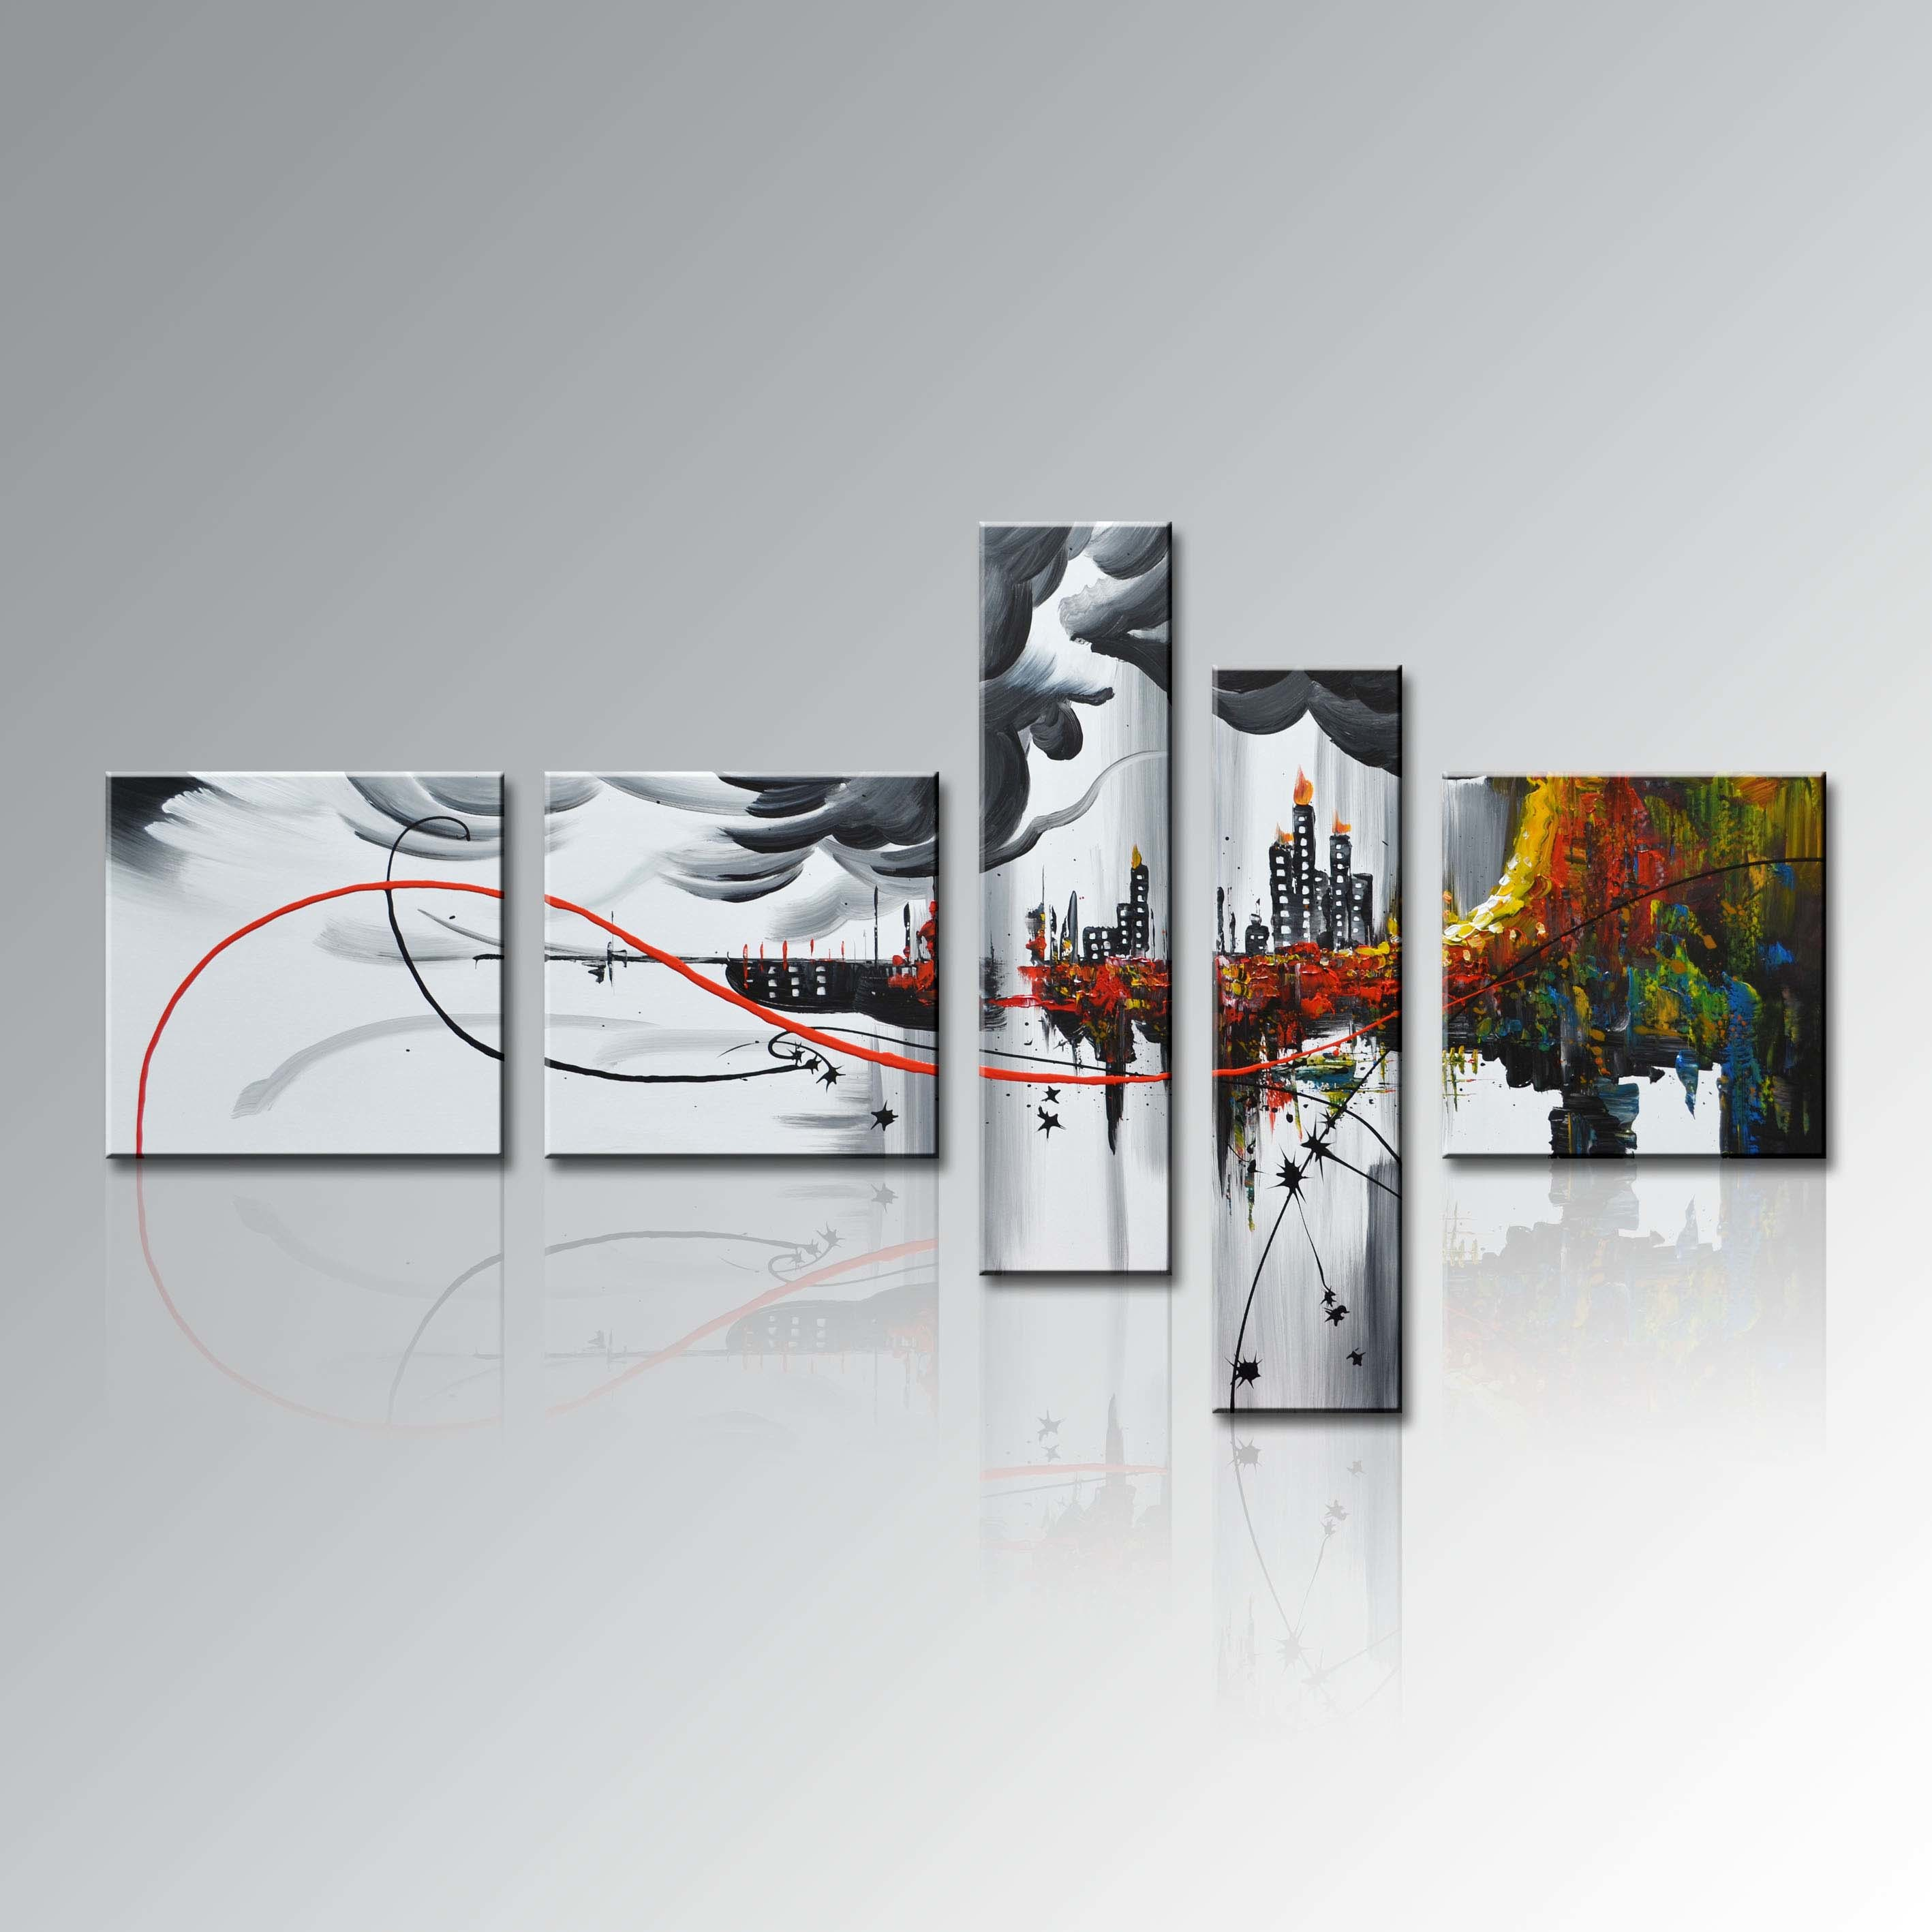 New Design Wall Art : China hand painted group piece modern framed home decor